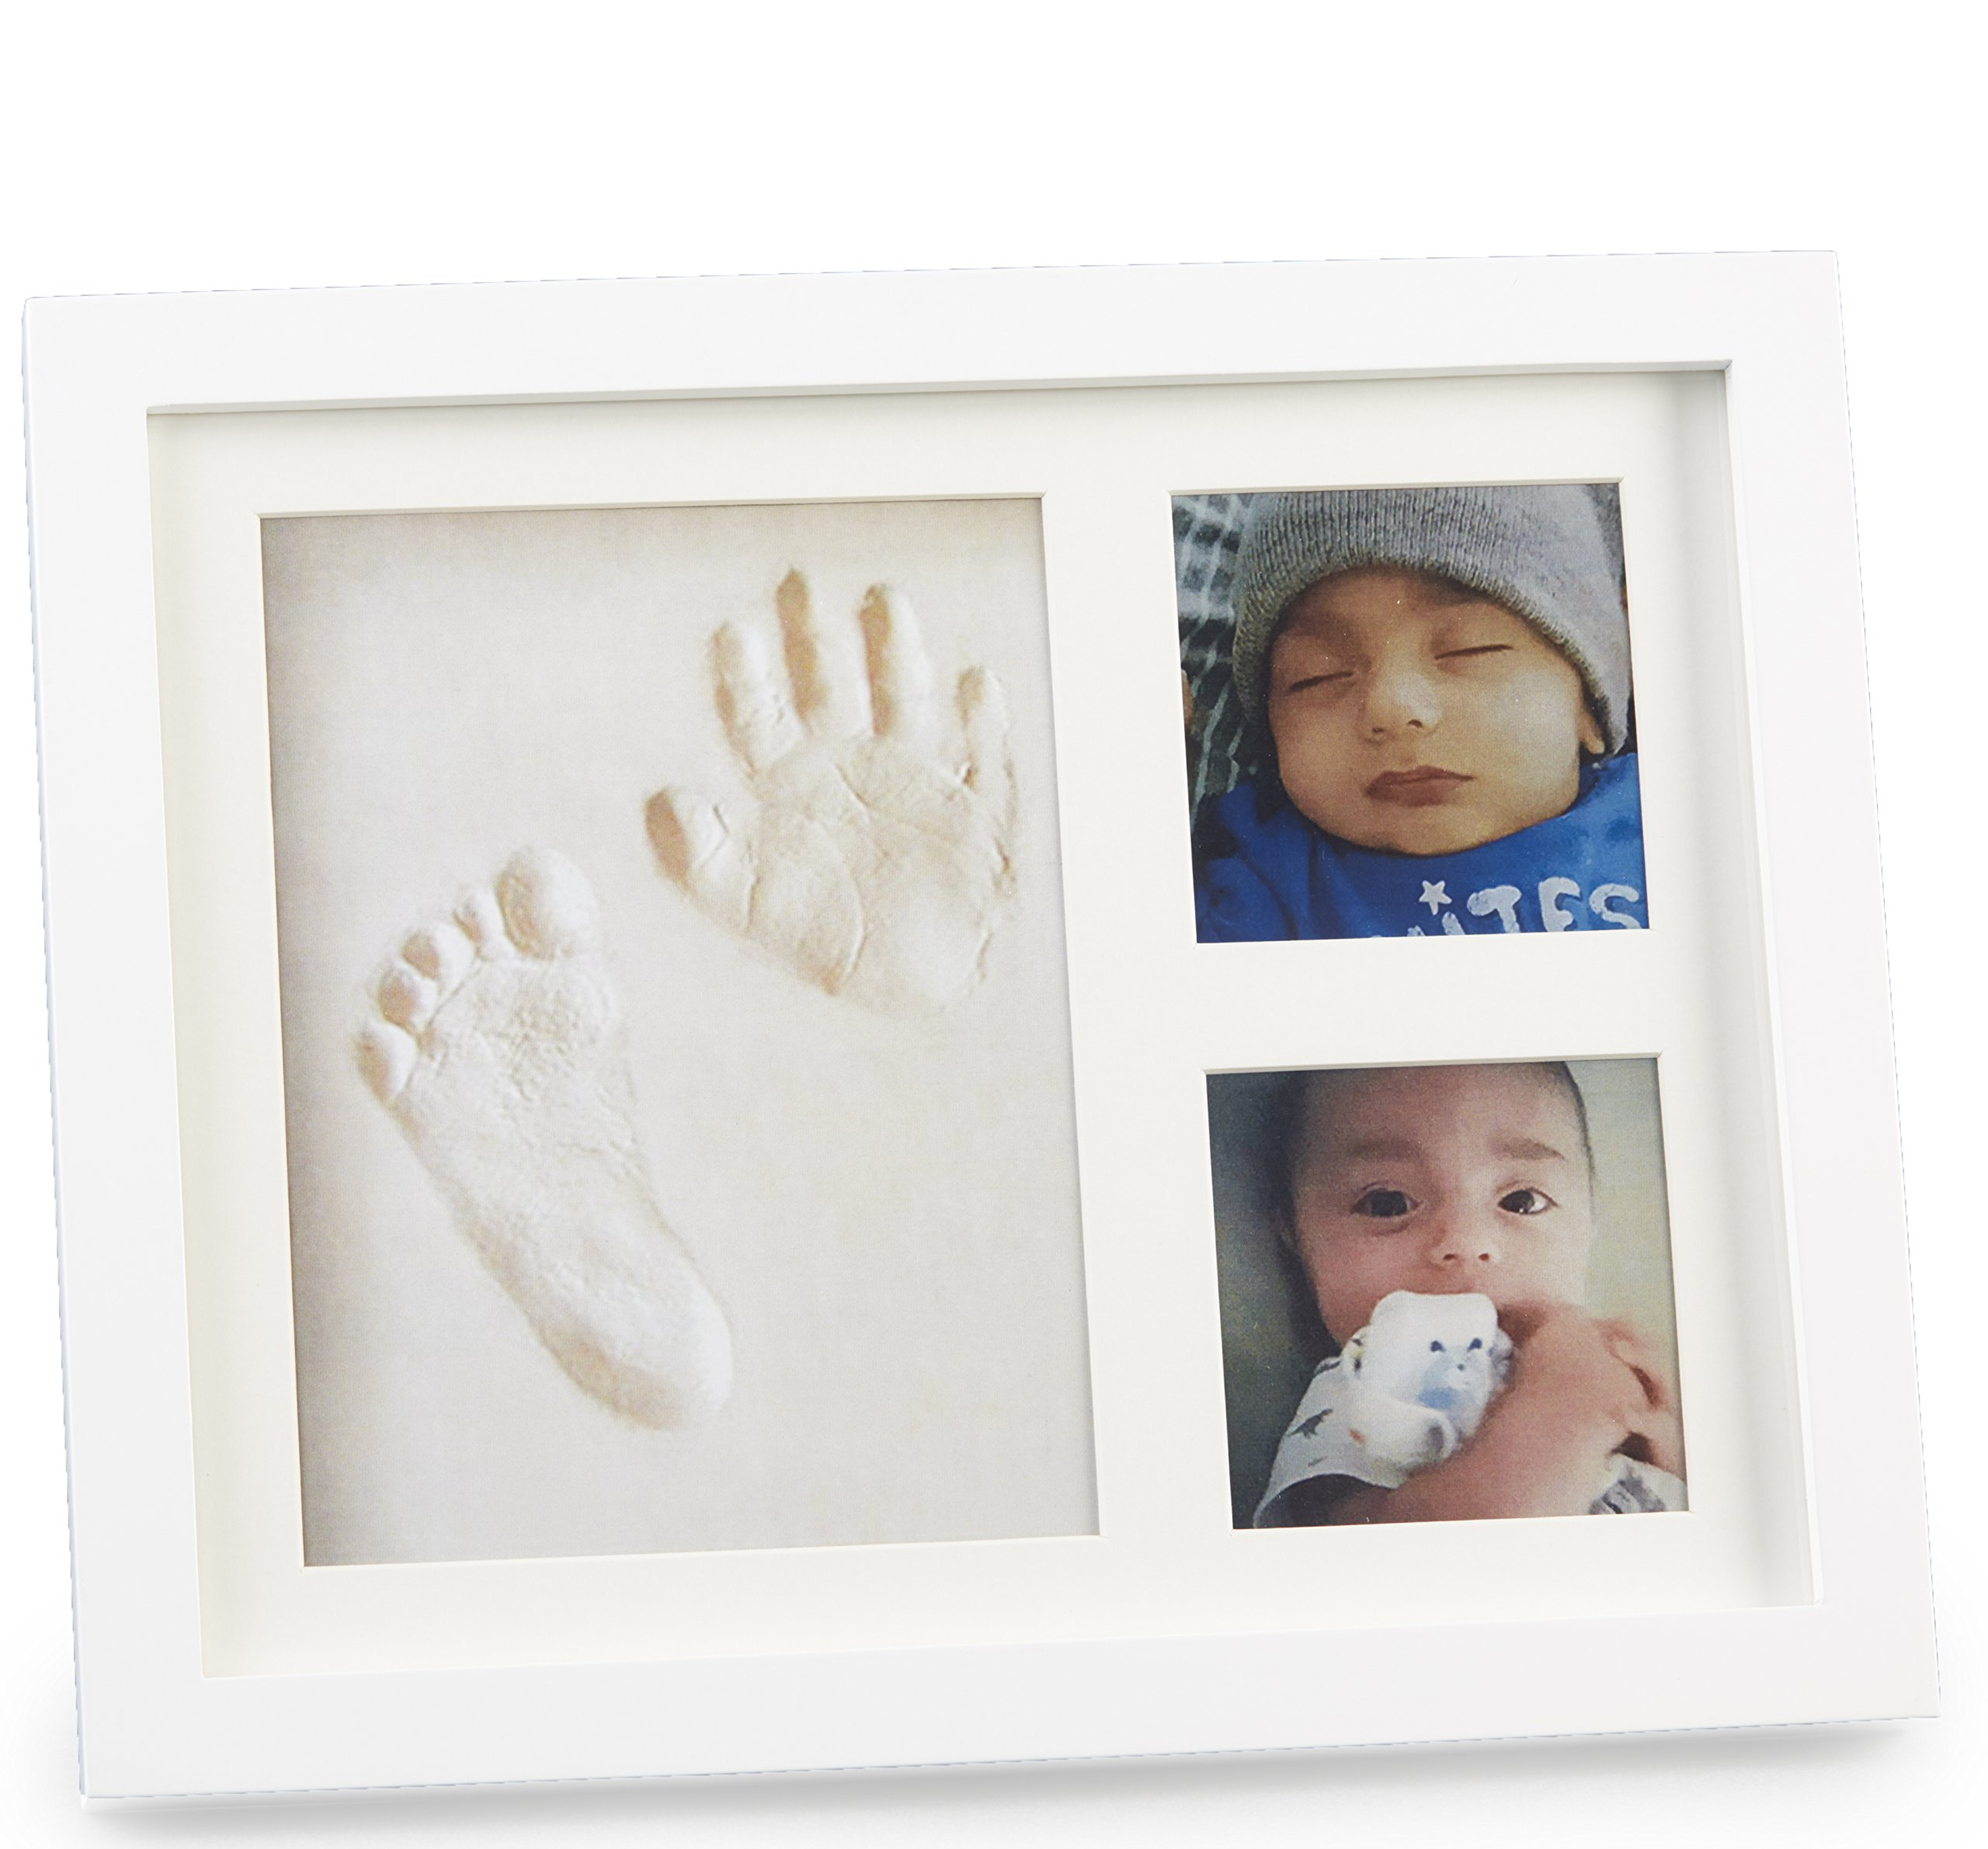 Baby Handprint Picture Frame Clay Kit for Newborn Girls and Boys by Baby Yei - The Photo Frames are Fully Painted White-Prevents Mold Creation-Safe for Treasuring your Angel's First Precious Memories